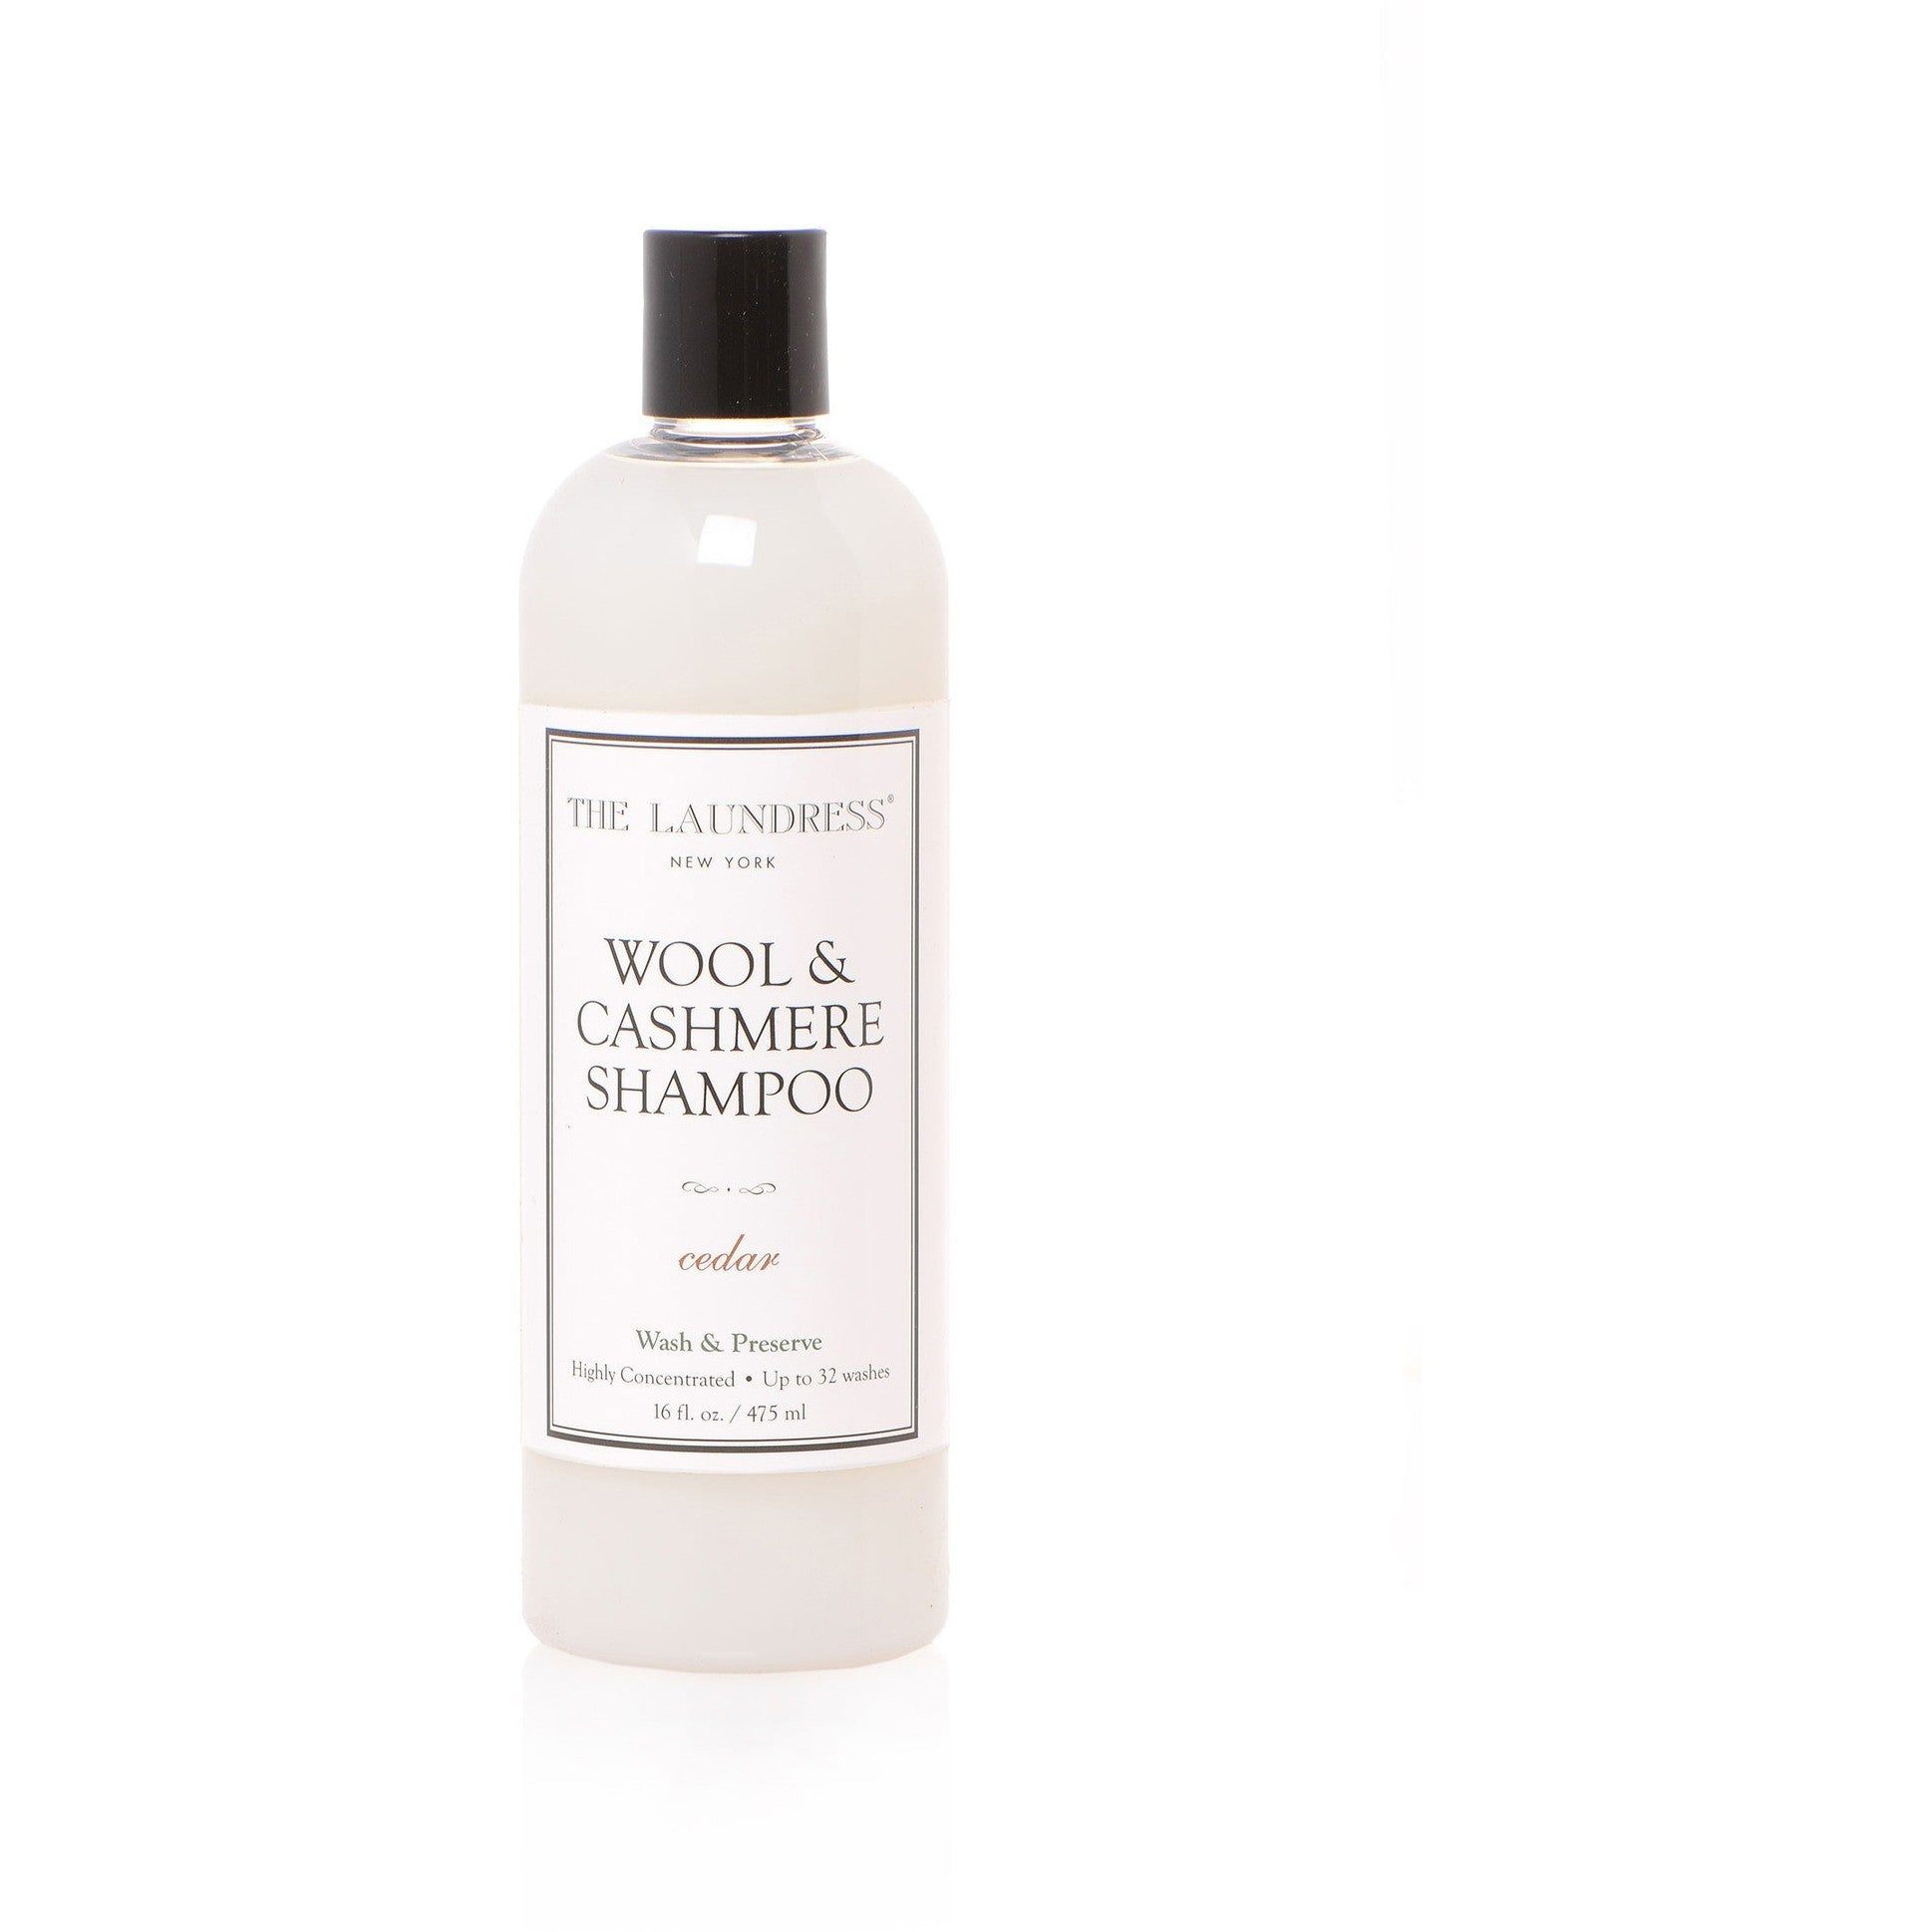 the laundress | wool & cashmere shampoo[product_type ]the laundress - Kiss and Makeup